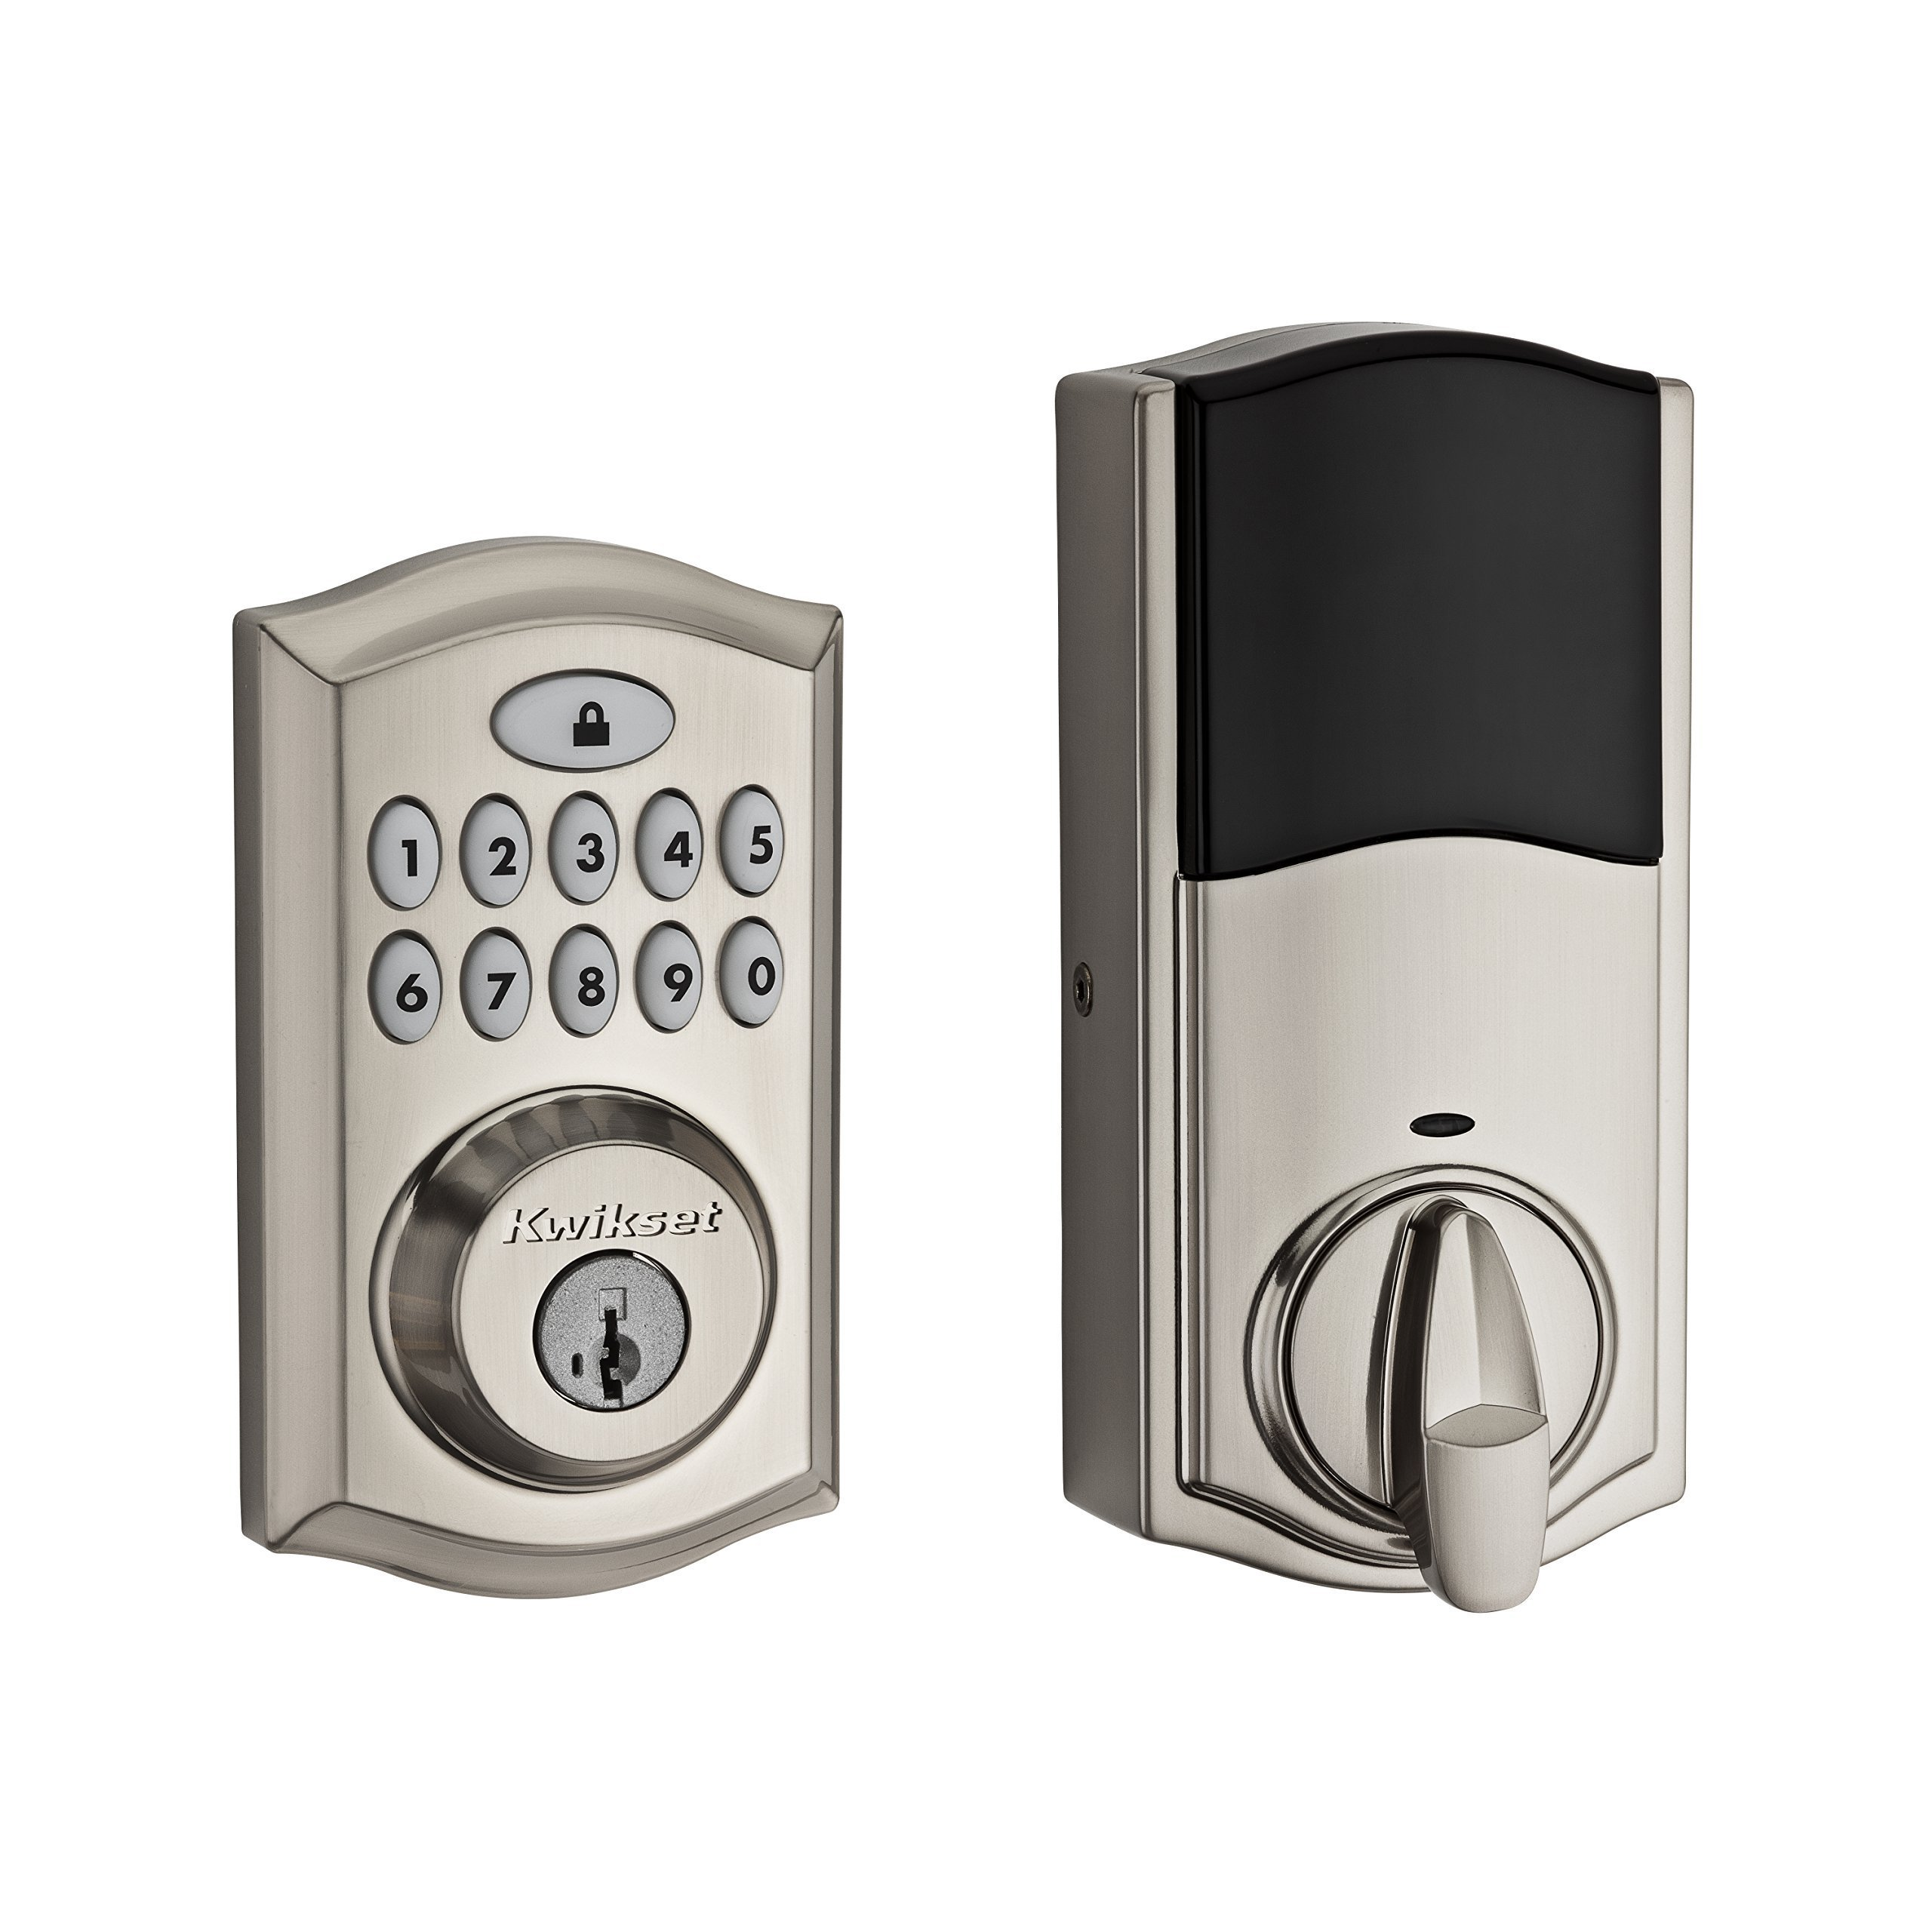 Kwikset 913 SmartCode Electronic Deadbolt featuring SmartKey Security and Avalon Handleset with Tustin Right Handed and Left Handed Lever in Satin Nickel